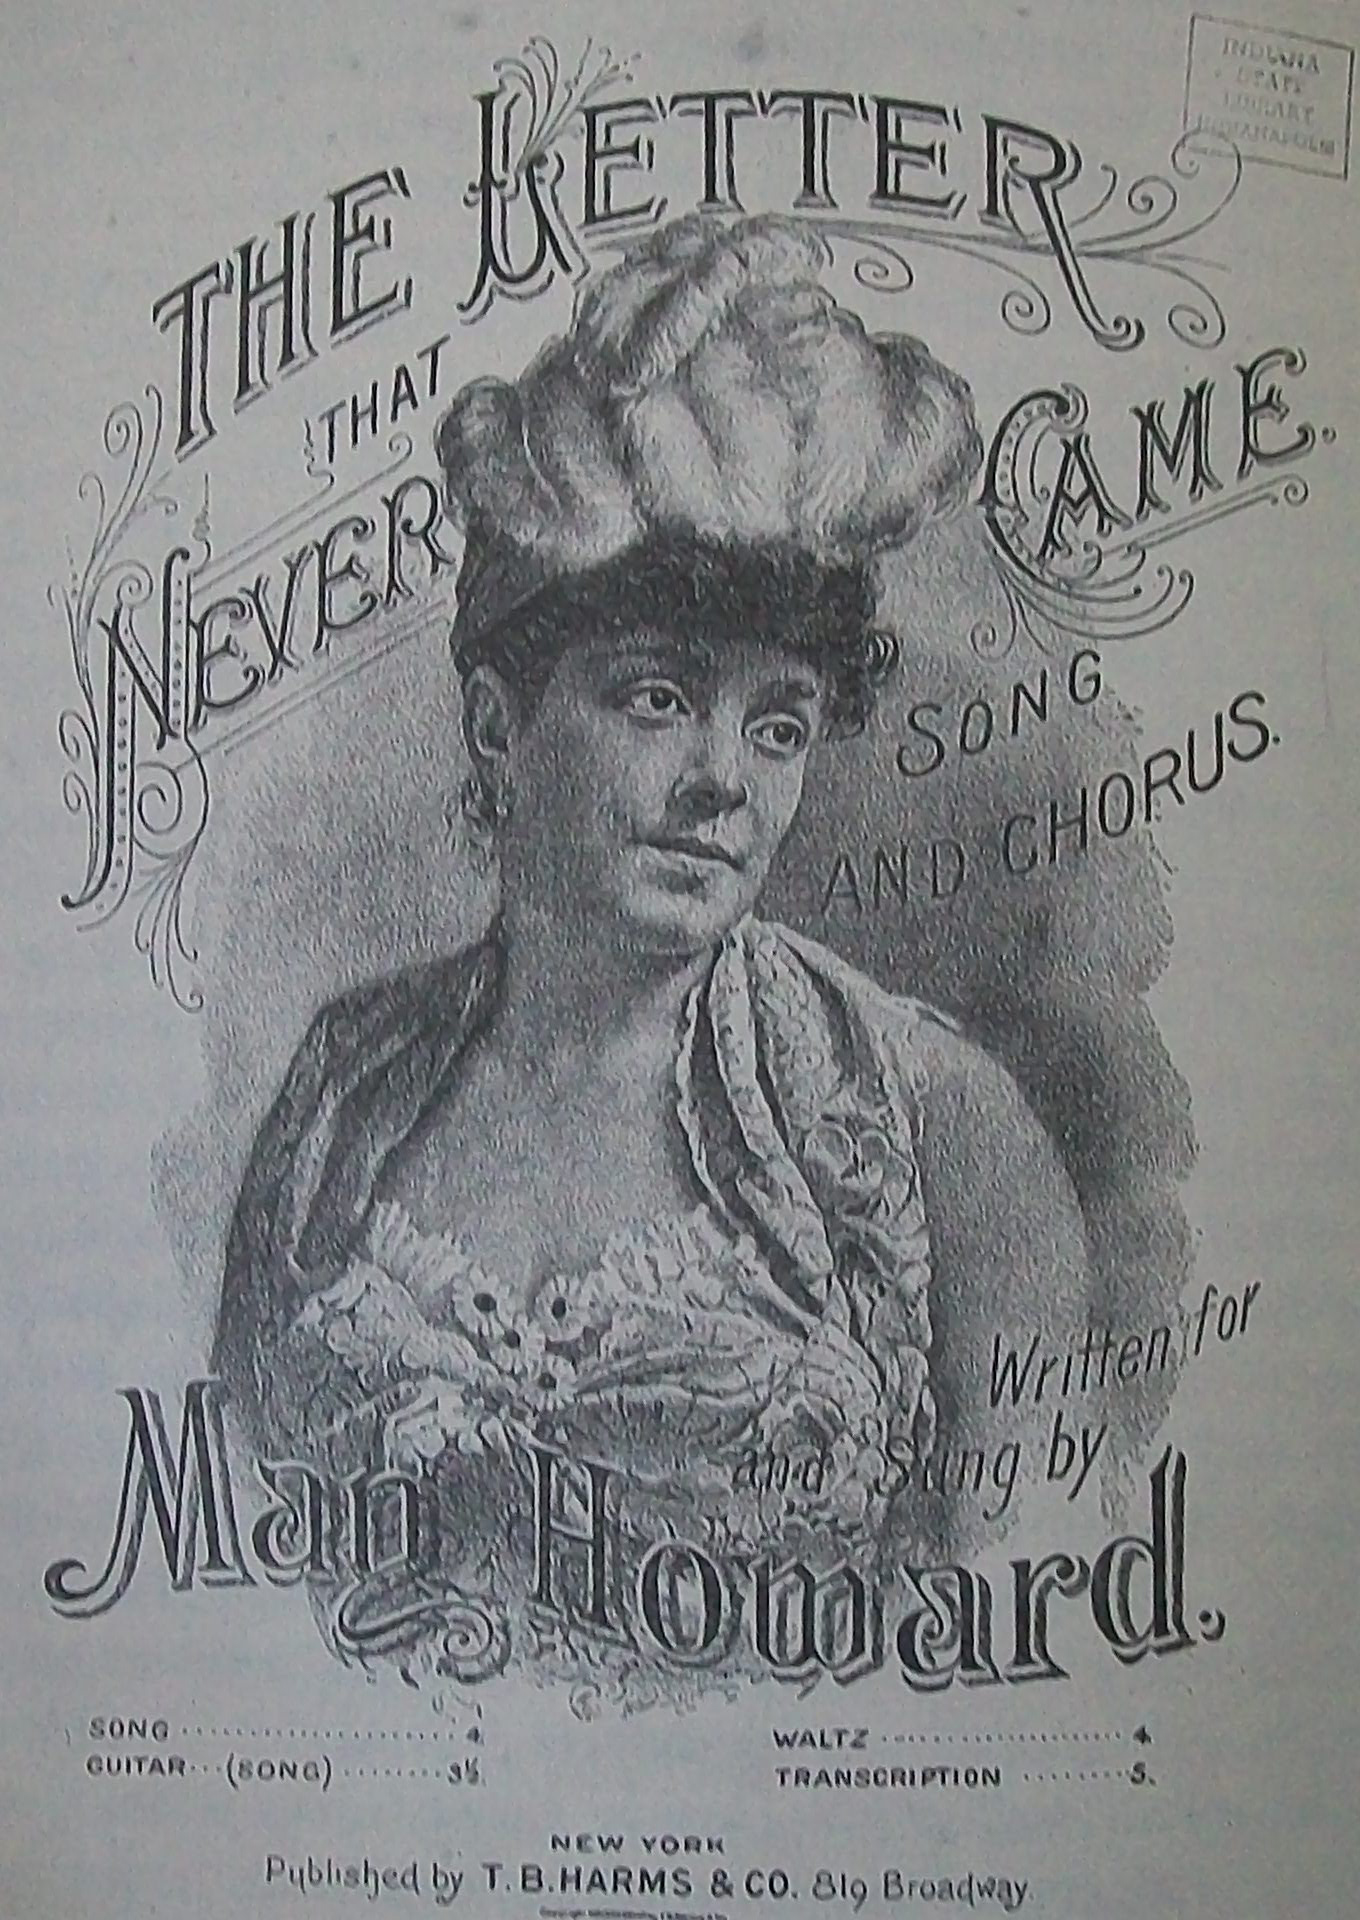 The_Letter_That_Never_Came,_1891_Sheet_music_cover